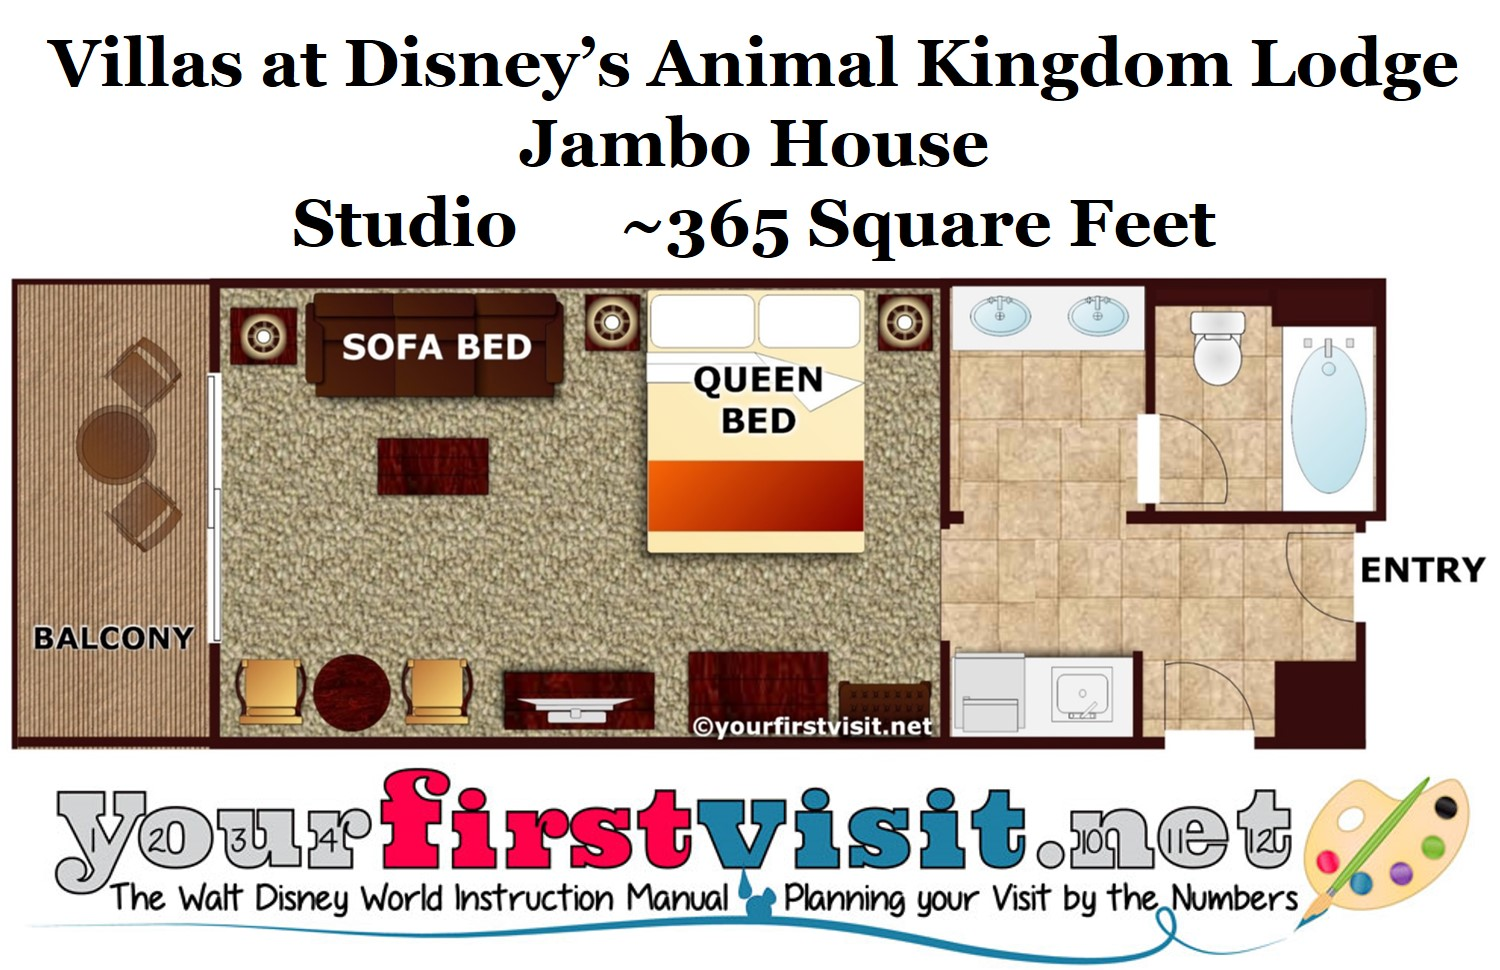 Floor Plan Studio Room Animal Kingdom Lodge Jambo House from yourfirstvisit.net